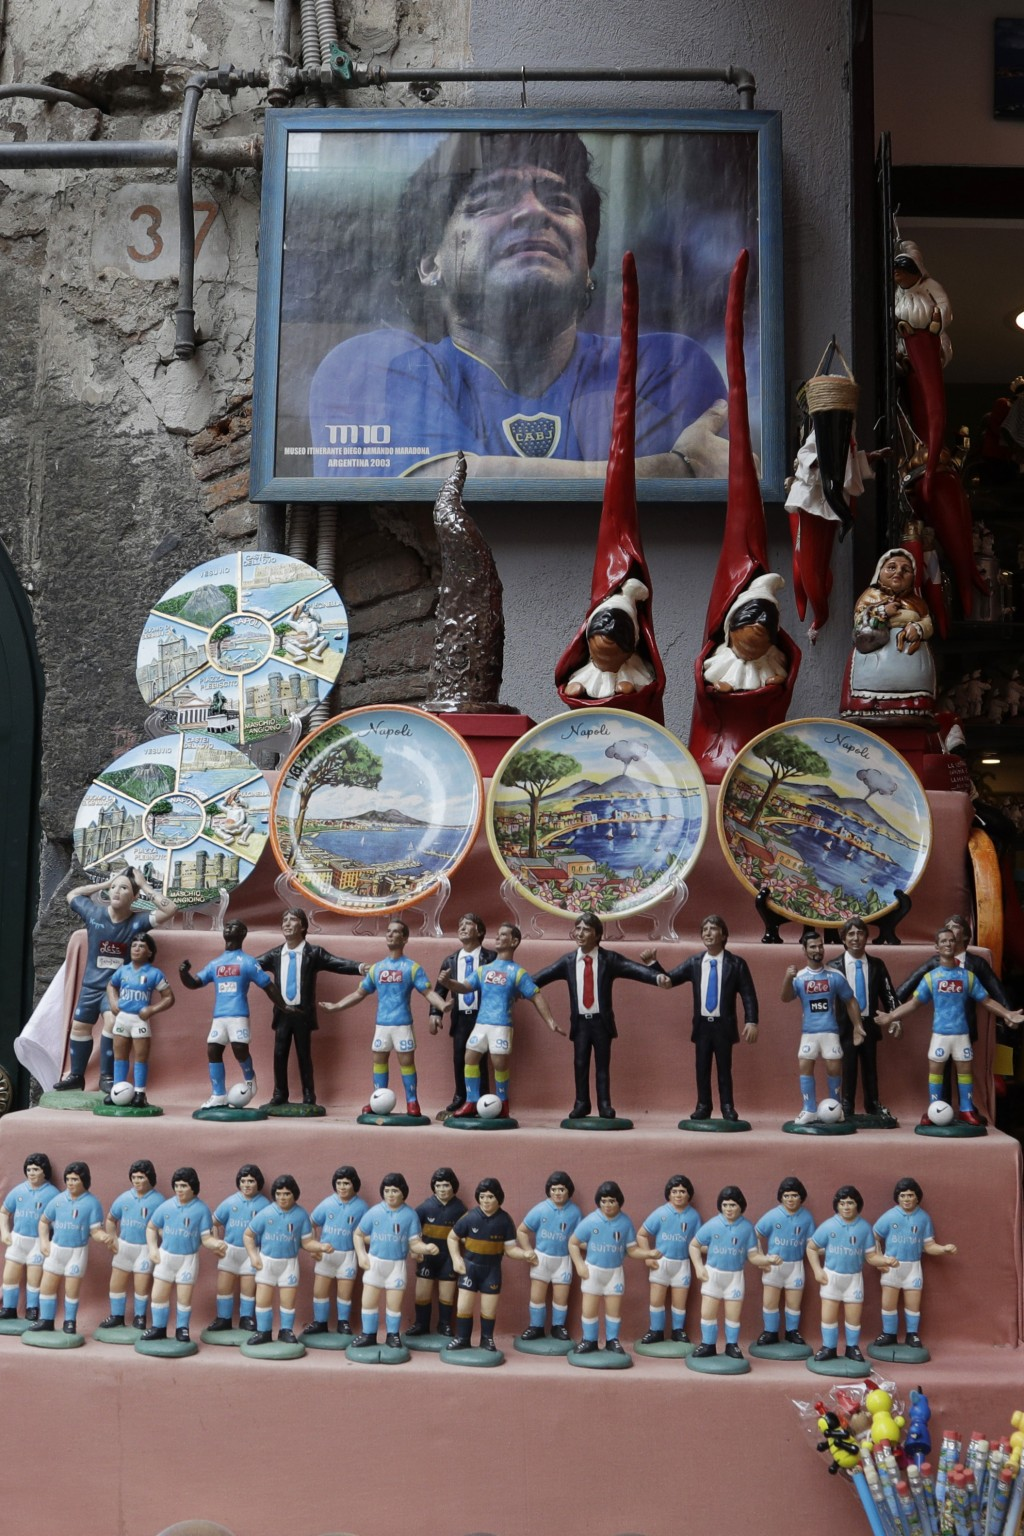 FILE - In this Wednesday, Sept. 18, 2019 file photo, statuettes of soccer legend and former Napoli player Diego Armando Maradona are displayed togethe...